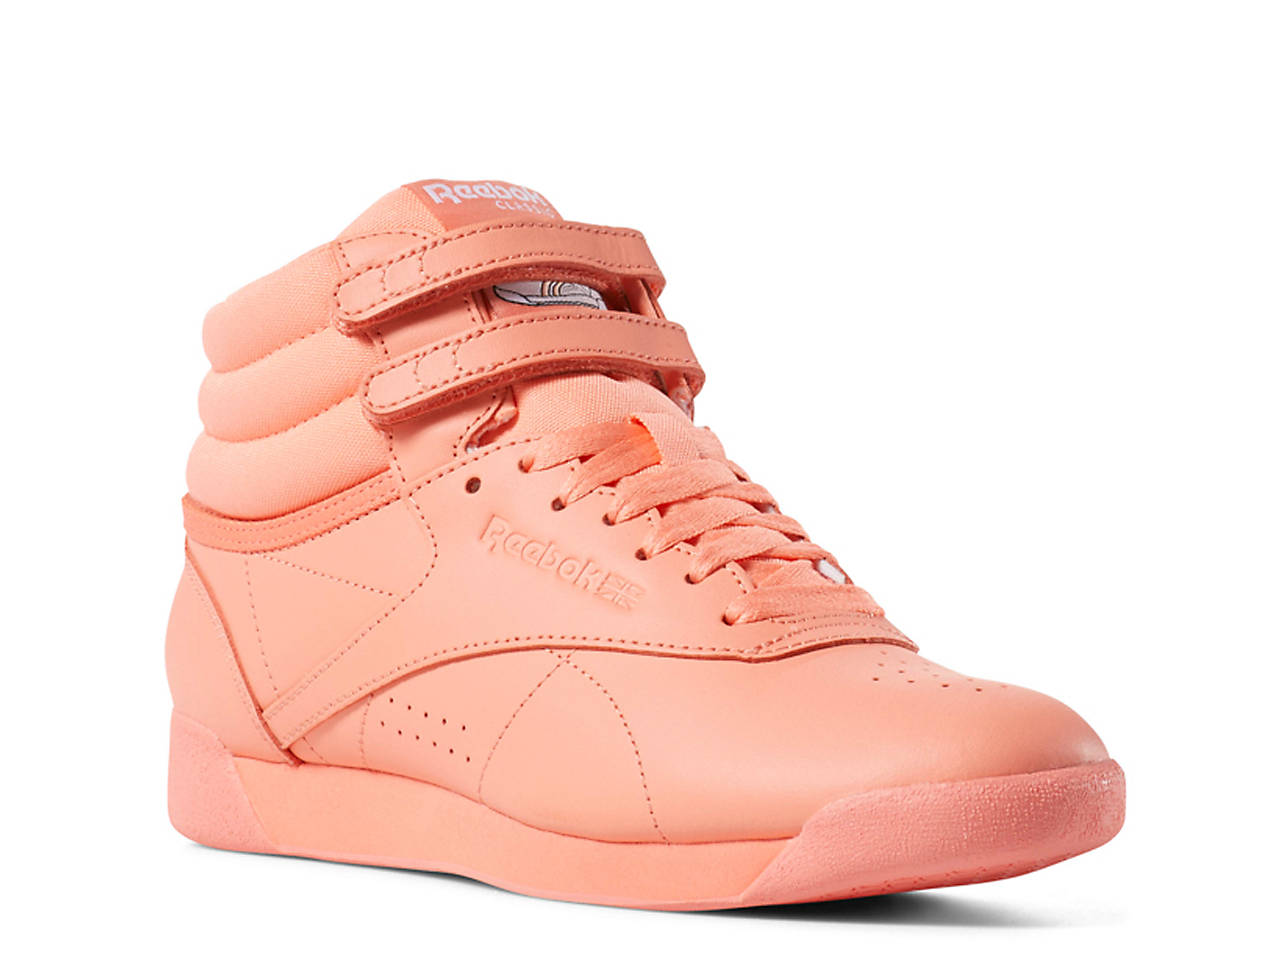 5040b66377e Reebok Freestyle Hi High-Top Sneaker - Women s Women s Shoes